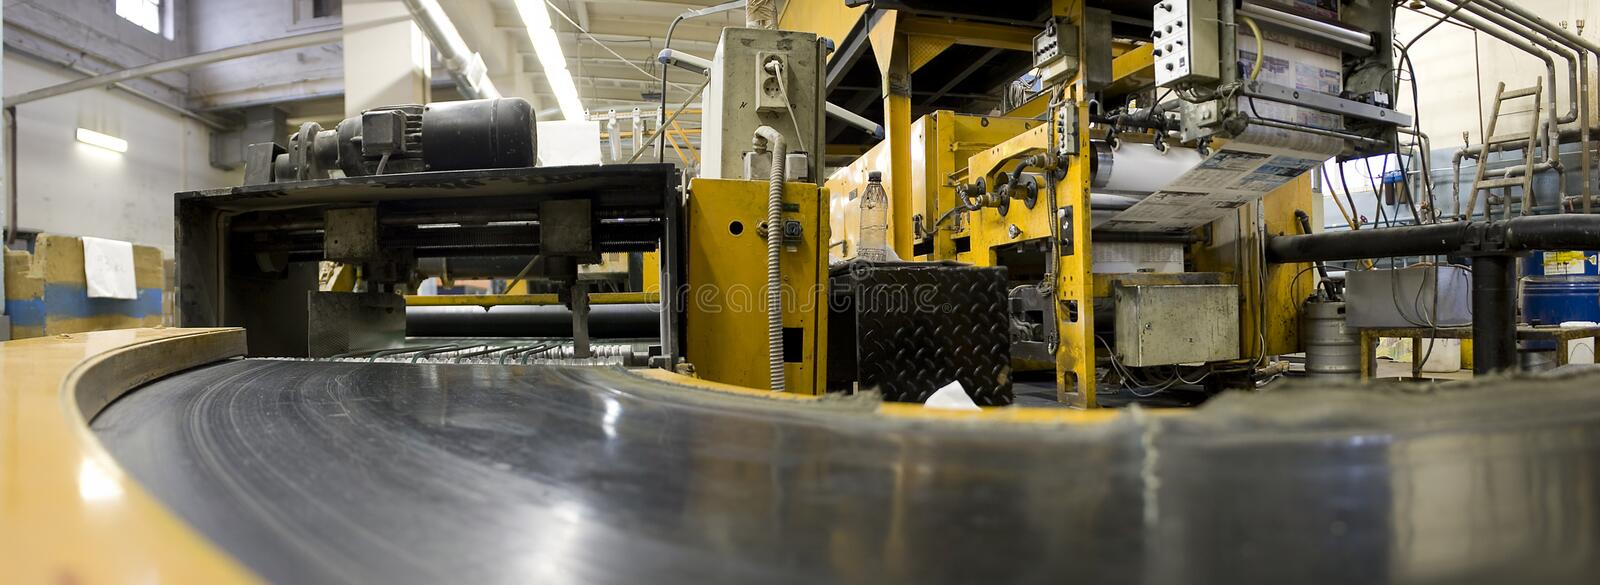 Offset printing press stock images